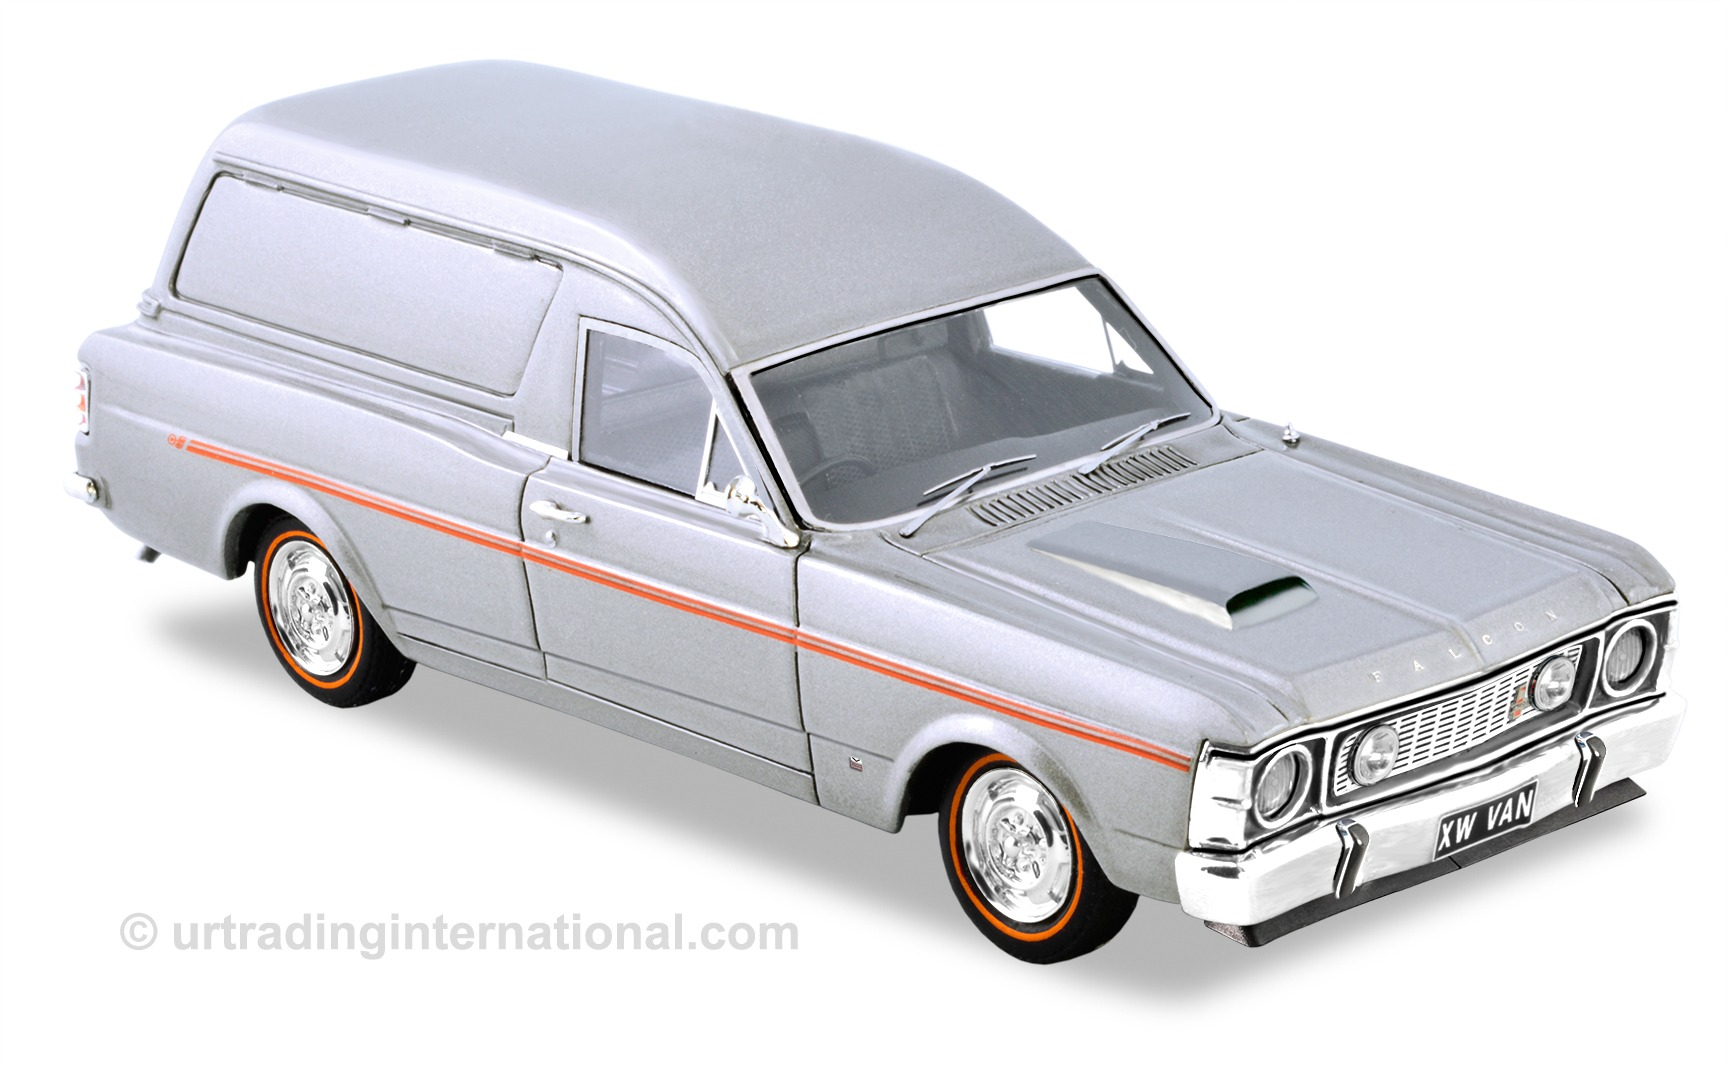 1970 XW GS Falcon Panel Van – Silver Fox